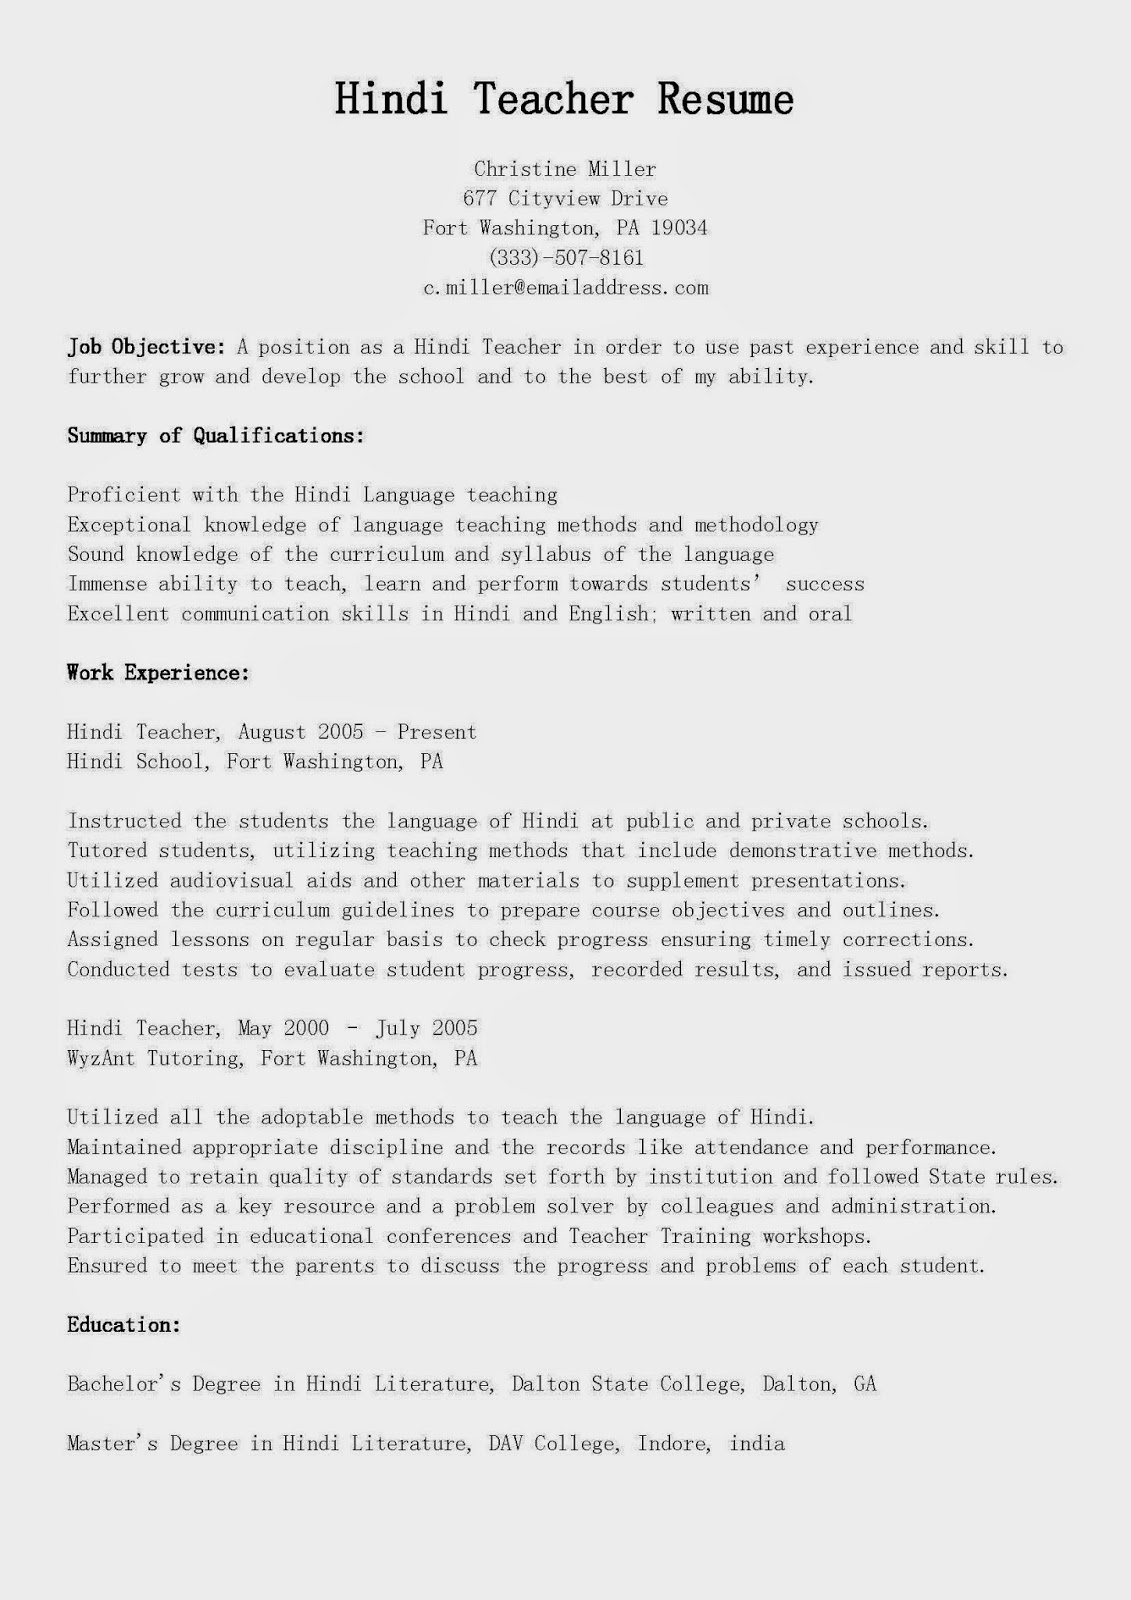 resume format for teachers in india